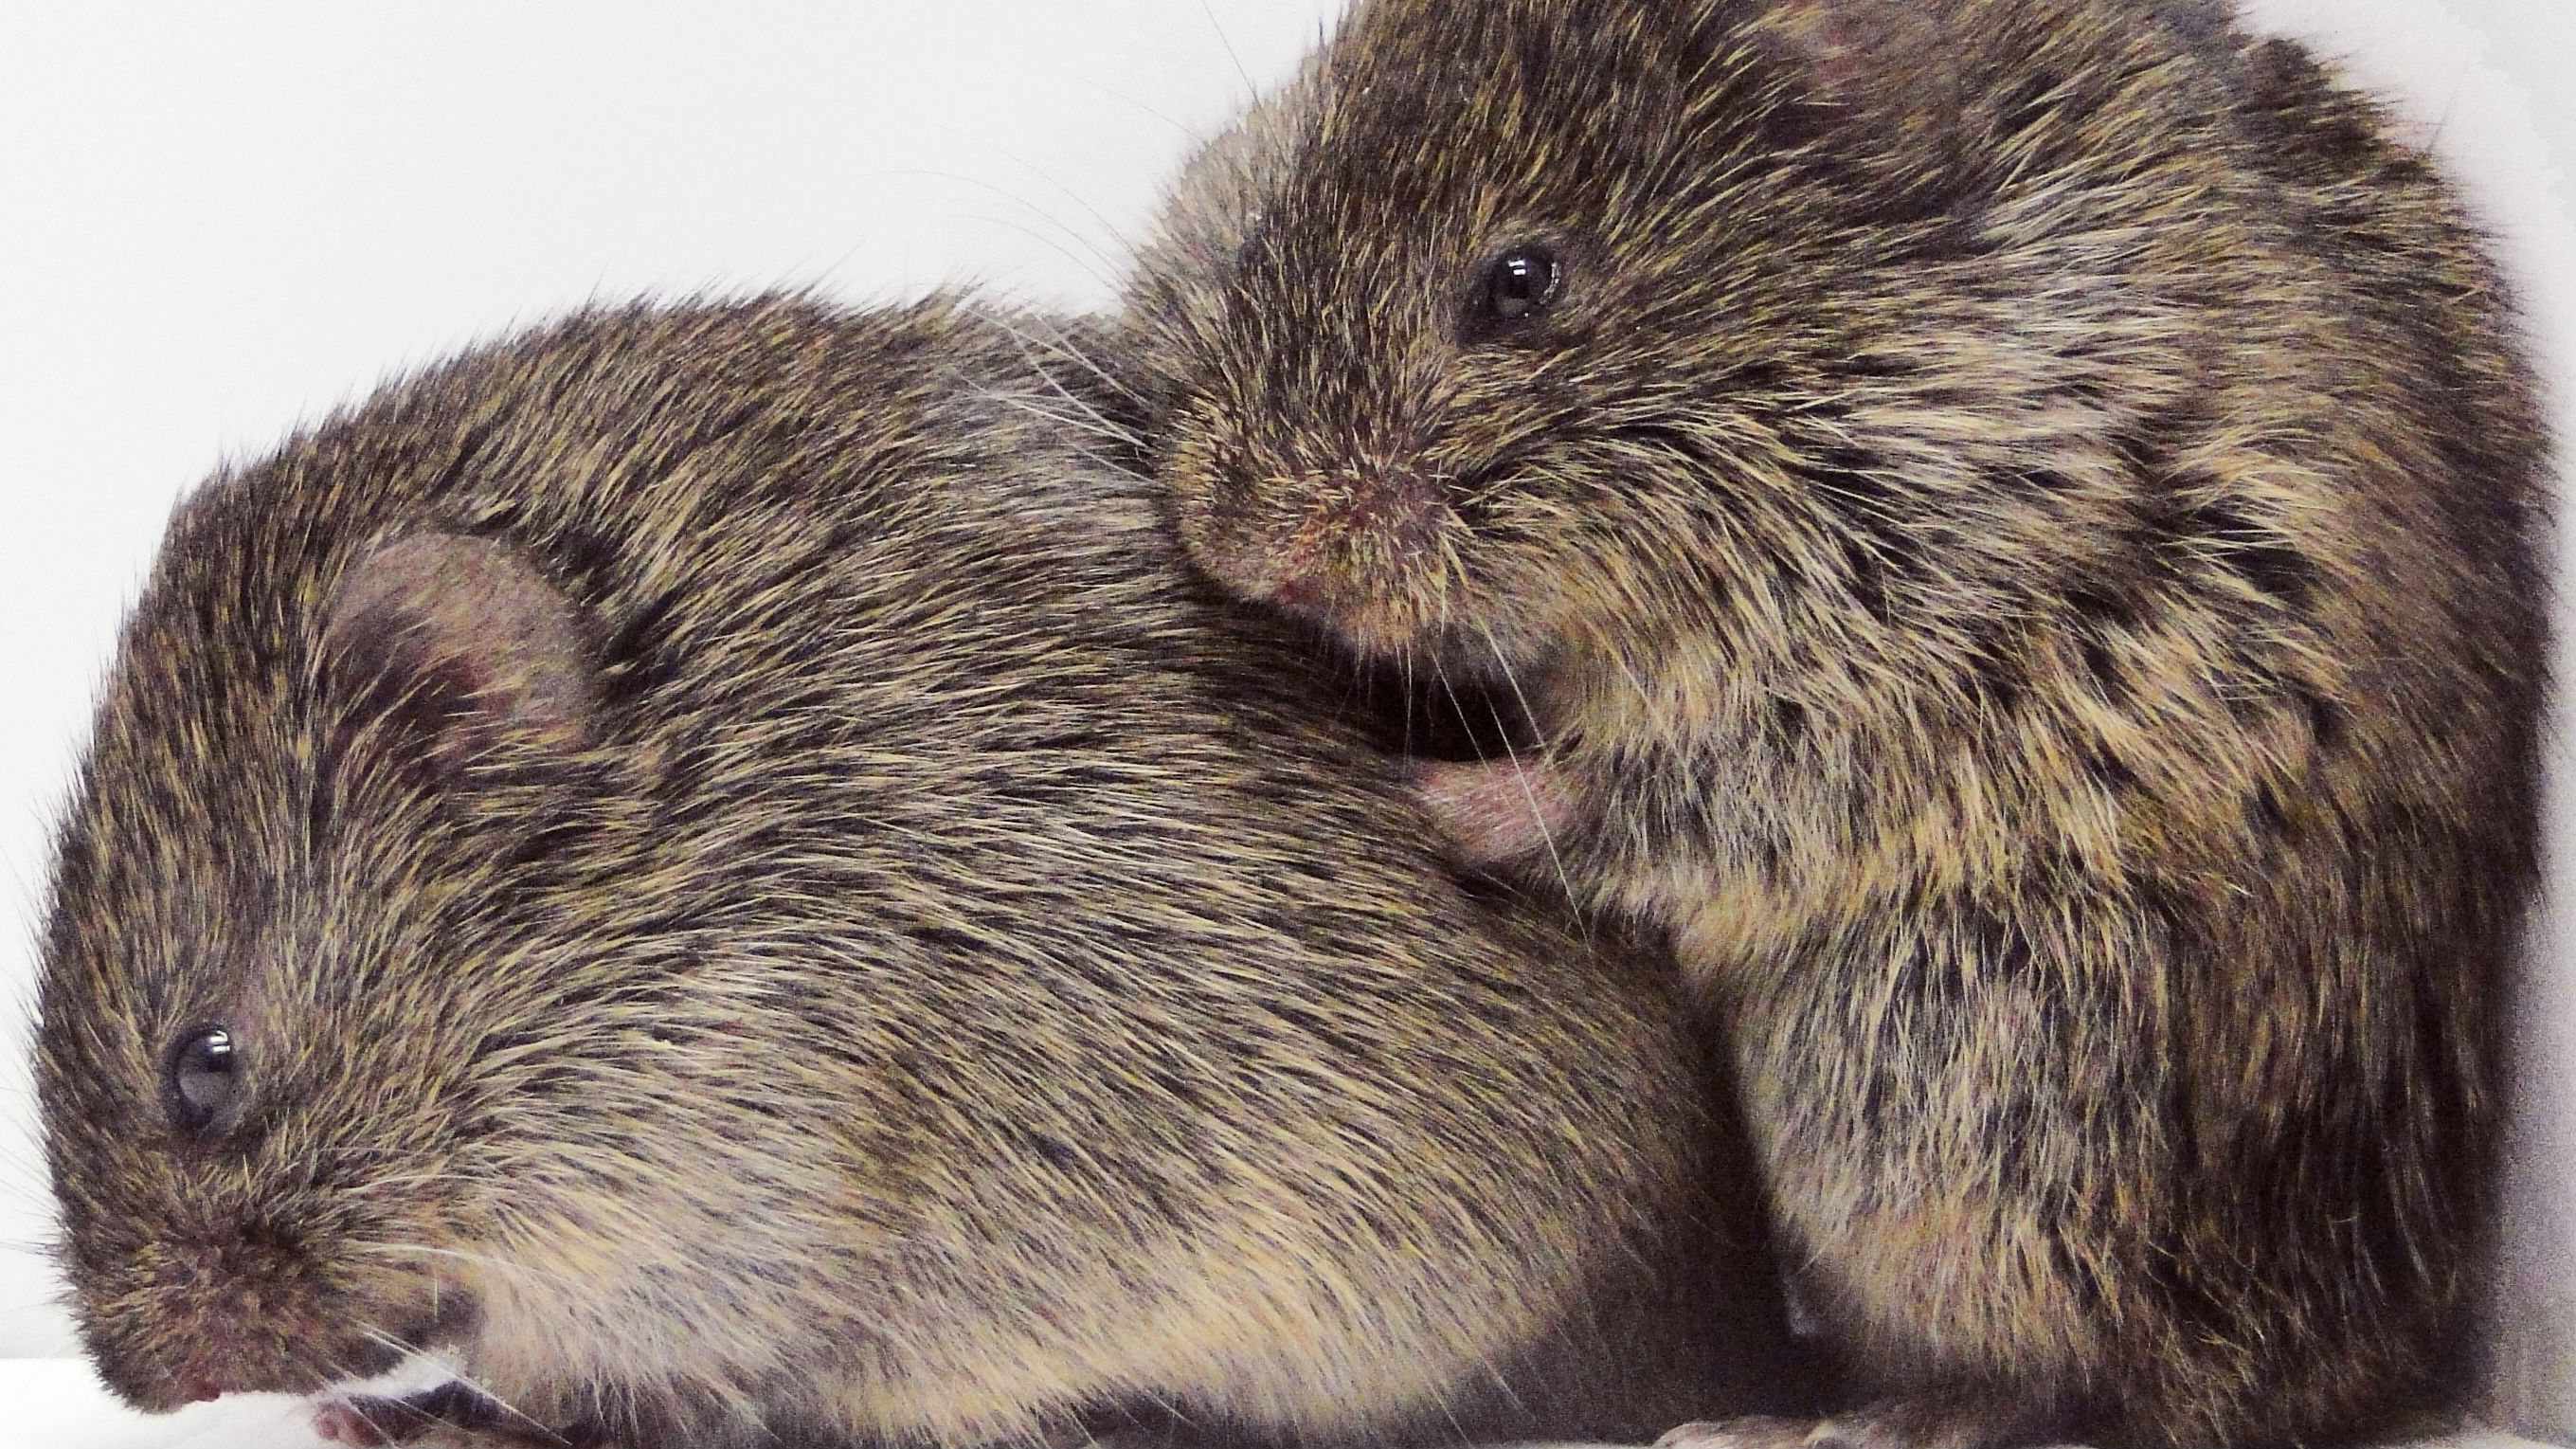 Voles cuddling each other change their brain chemistry—which may cause them to cuddle more.